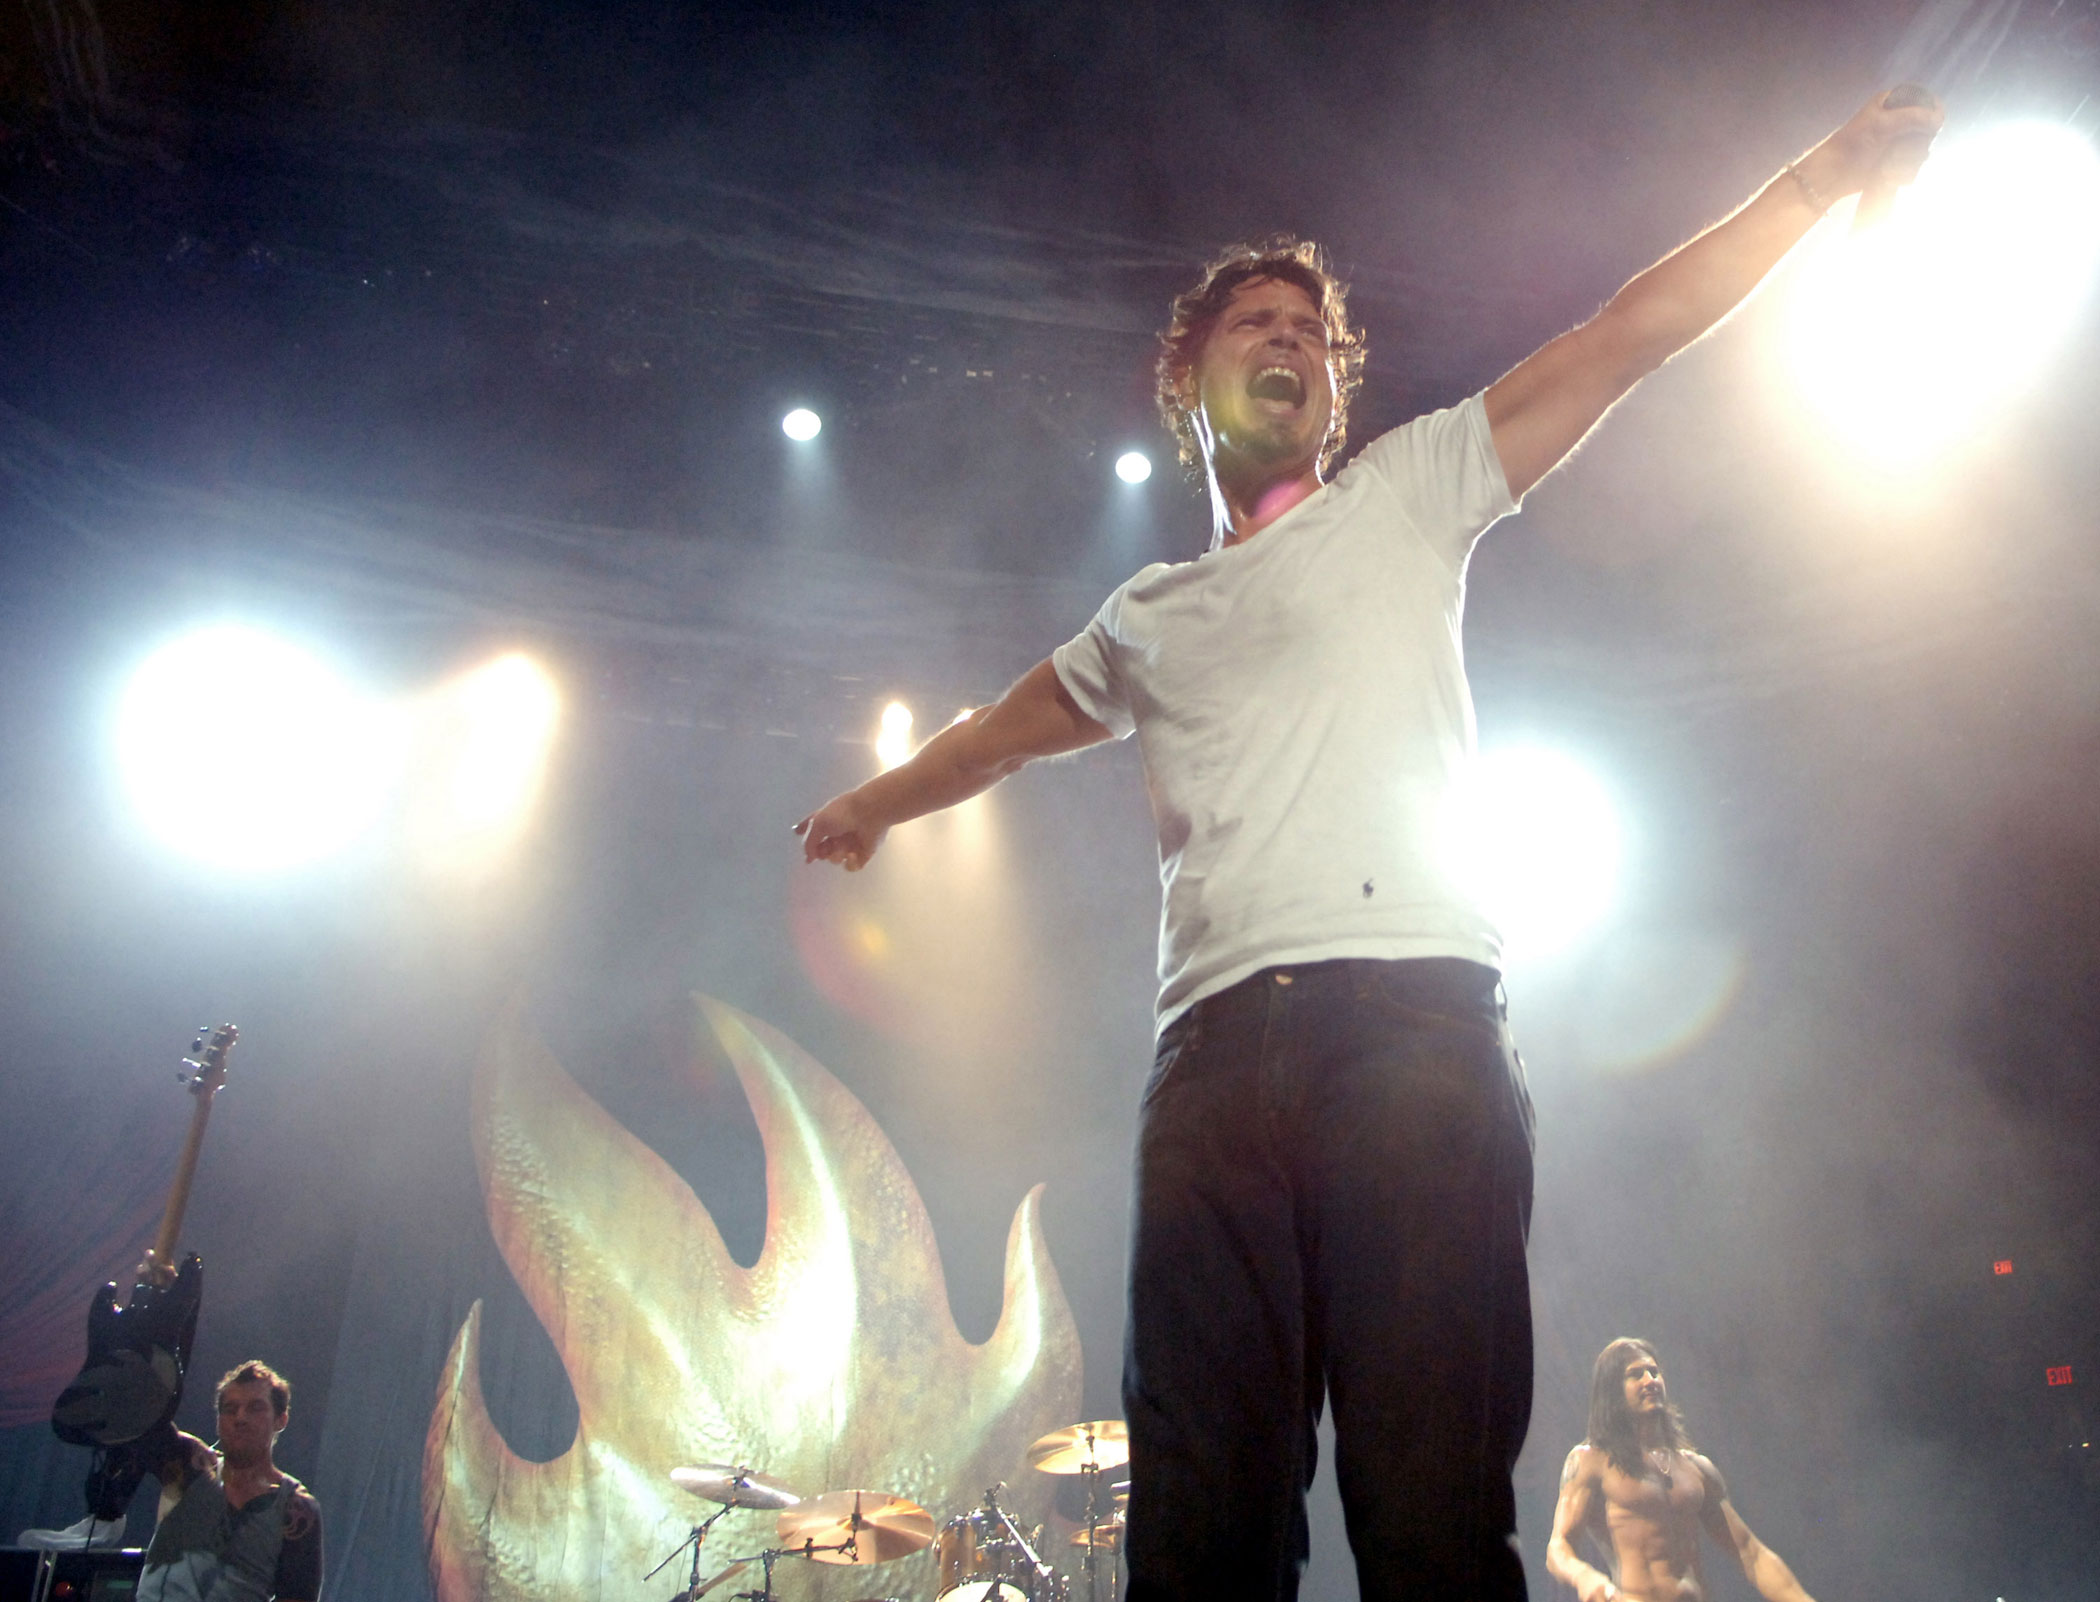 <b>Chris Cornell</b> of the band, Audioslave, sang the theme song for <i>Casino Royale</i>.